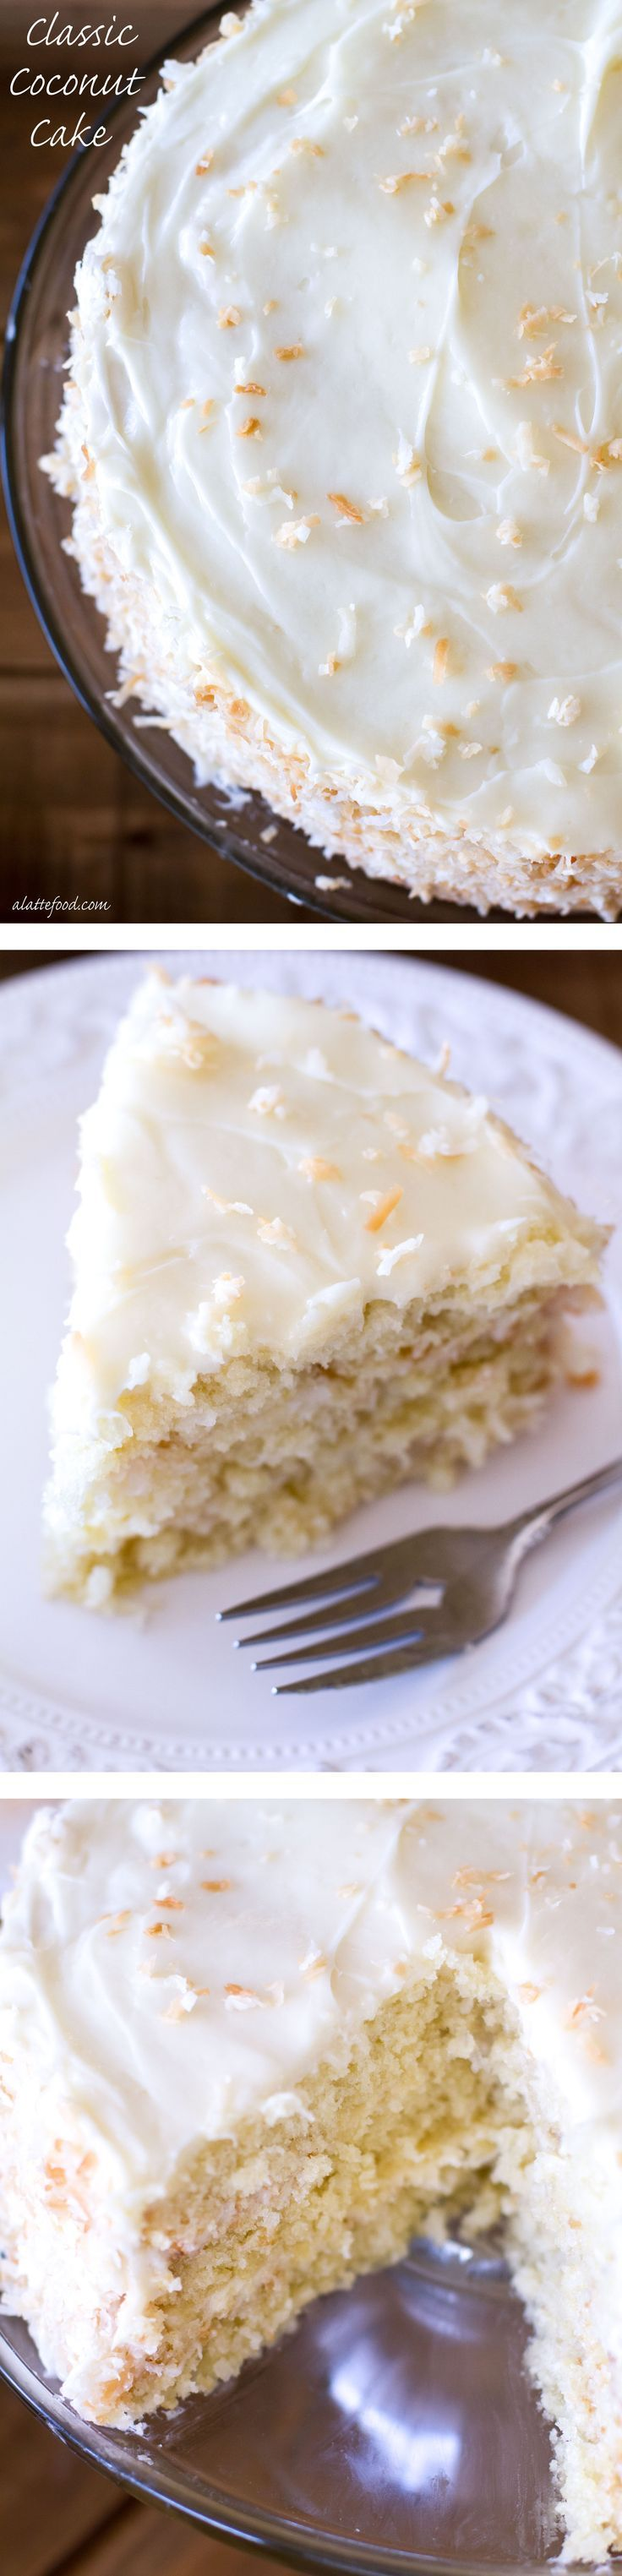 This easy coconut cake recipe is packed with sweet coconut flavor and topped with a sweet and tangy simple cream cheese frosting.